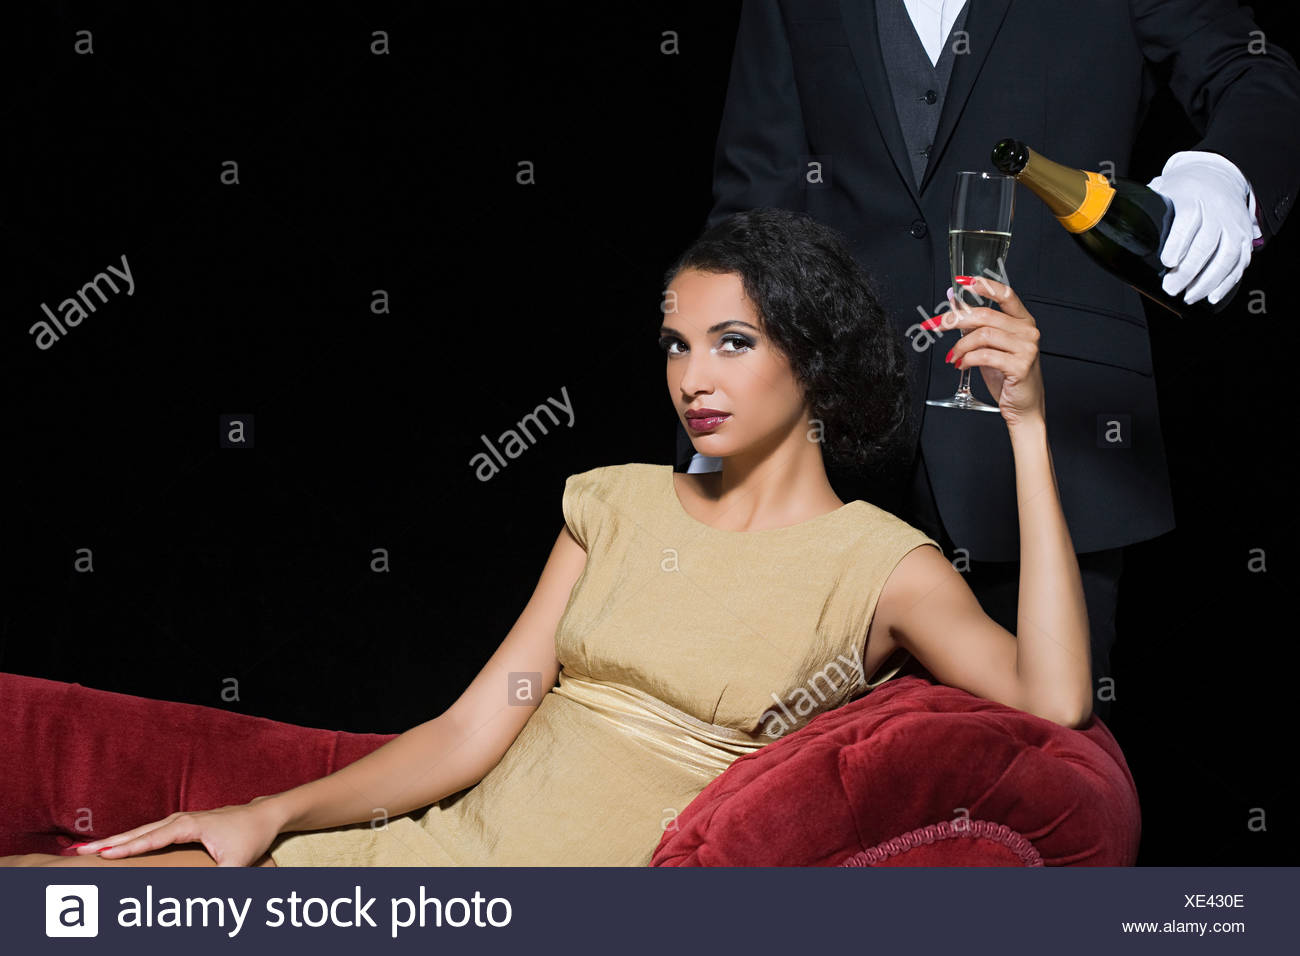 Woman having champagne served by servant - Stock Image